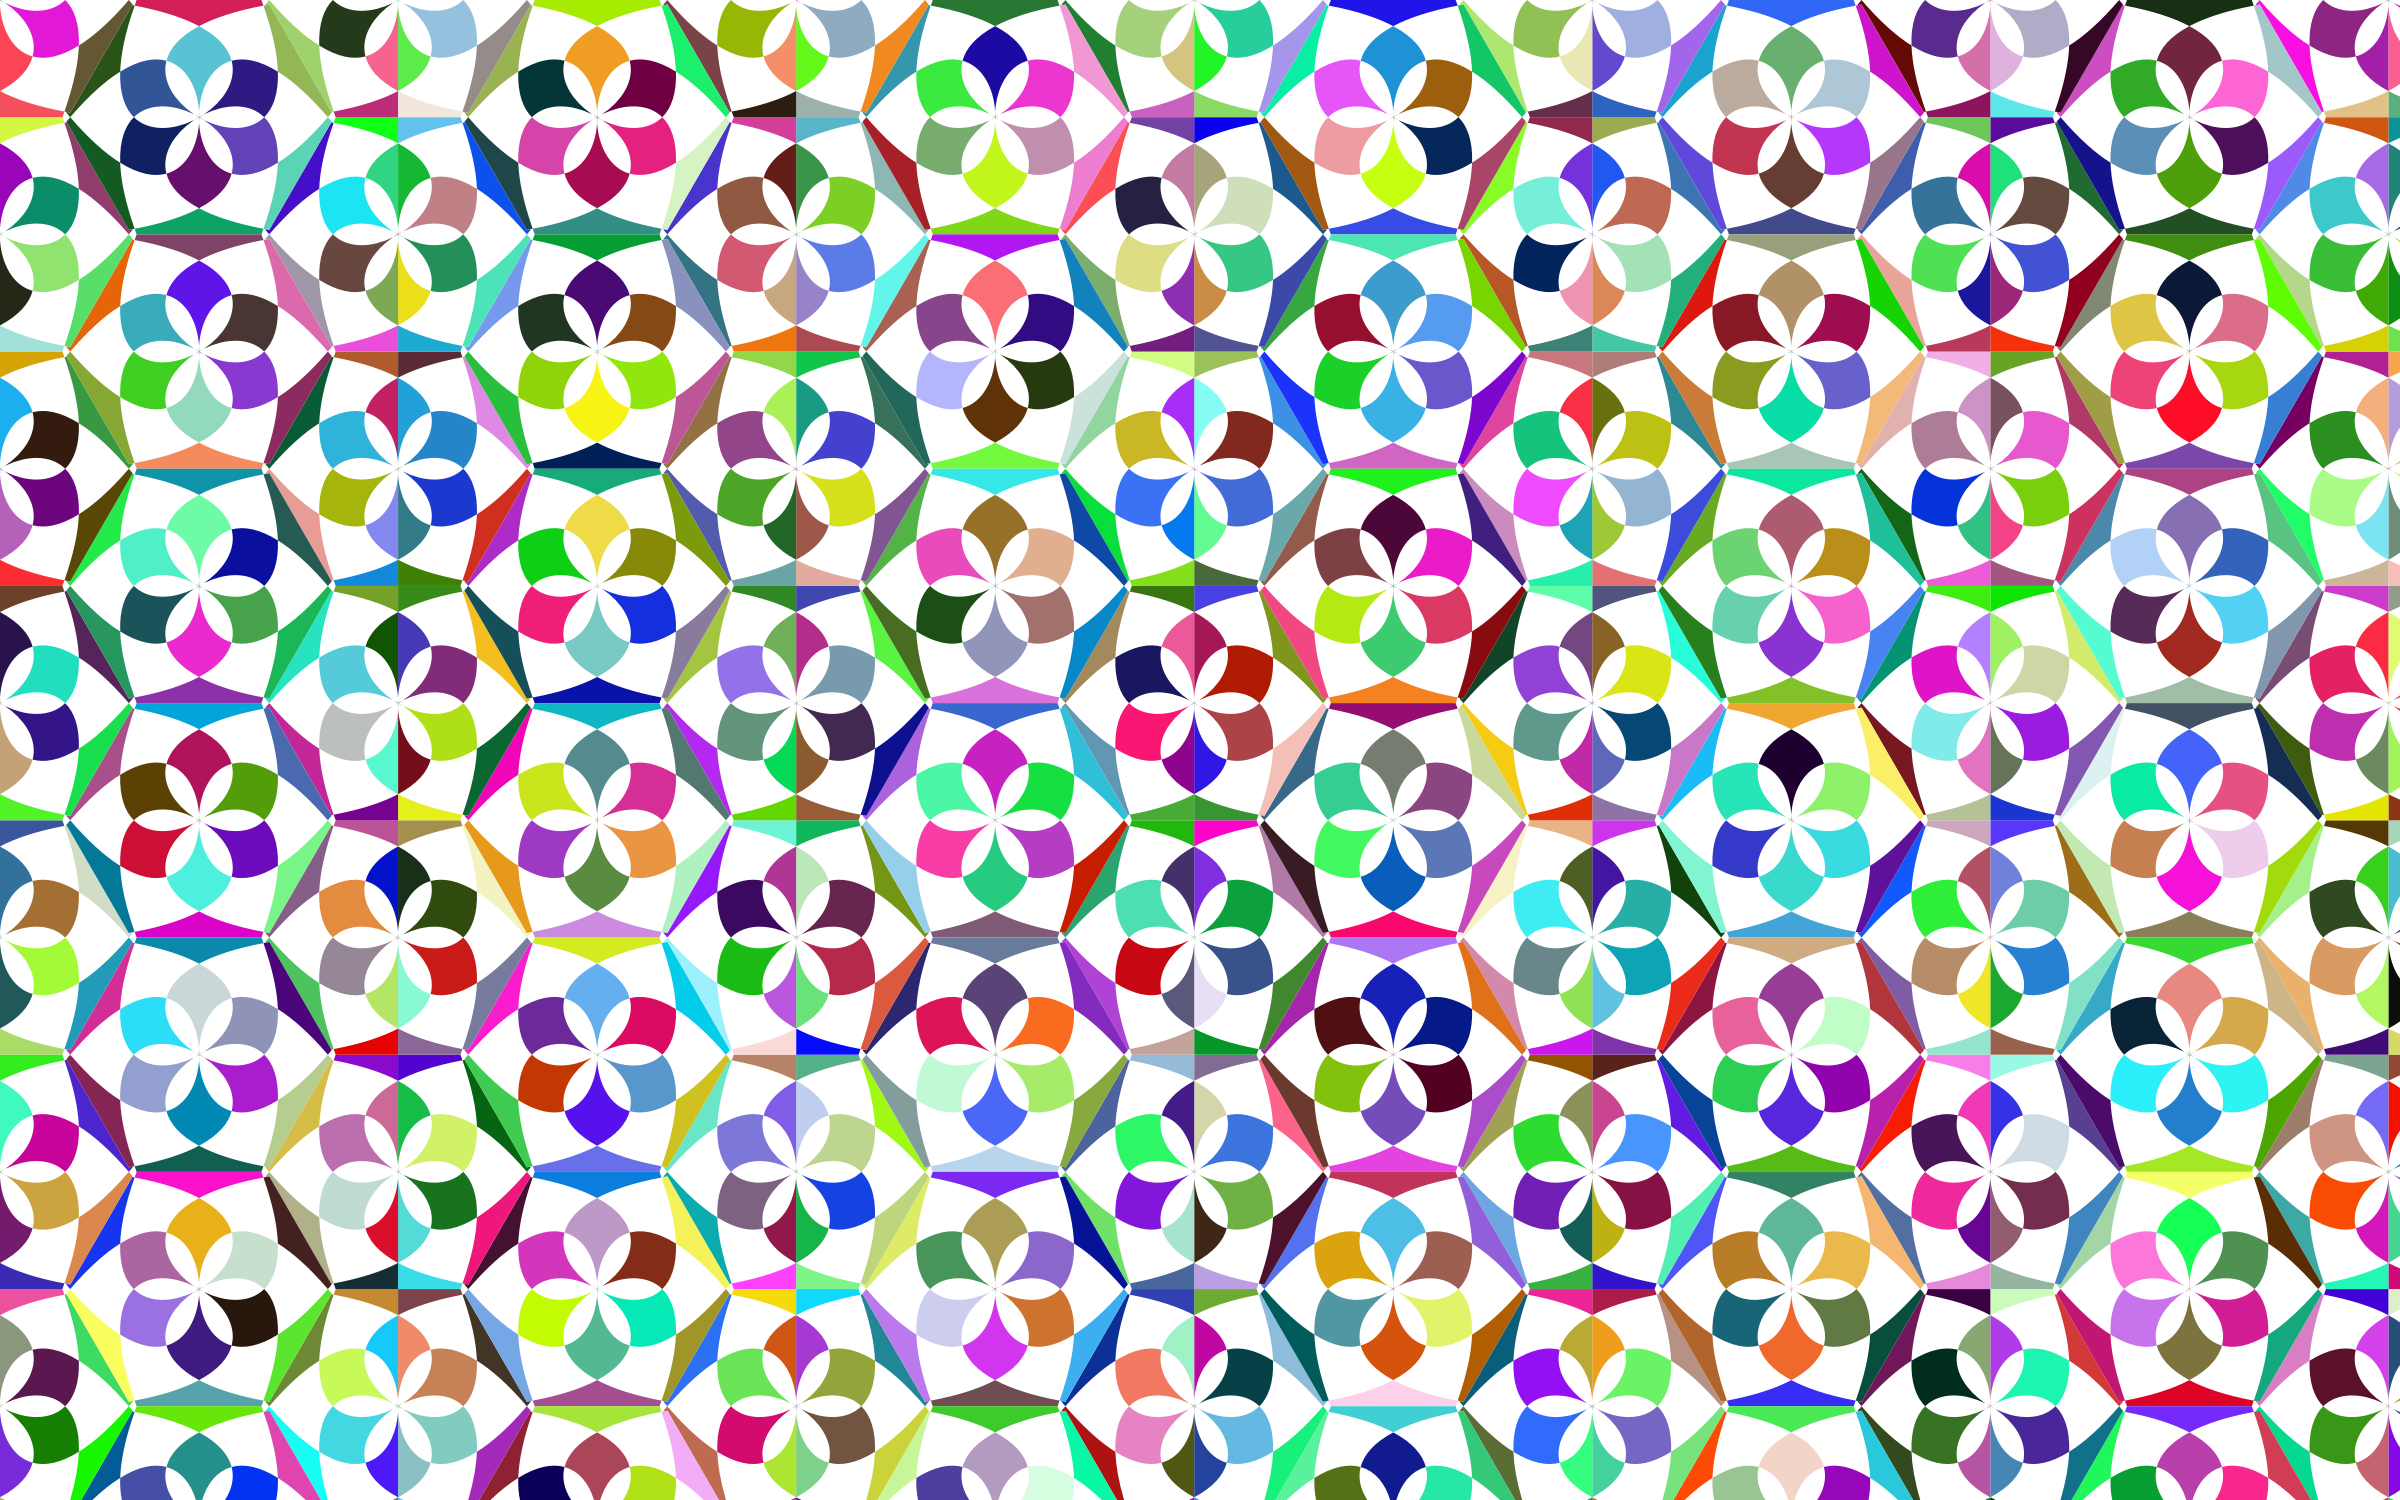 Prismatic Floral Pattern 3 by GDJ